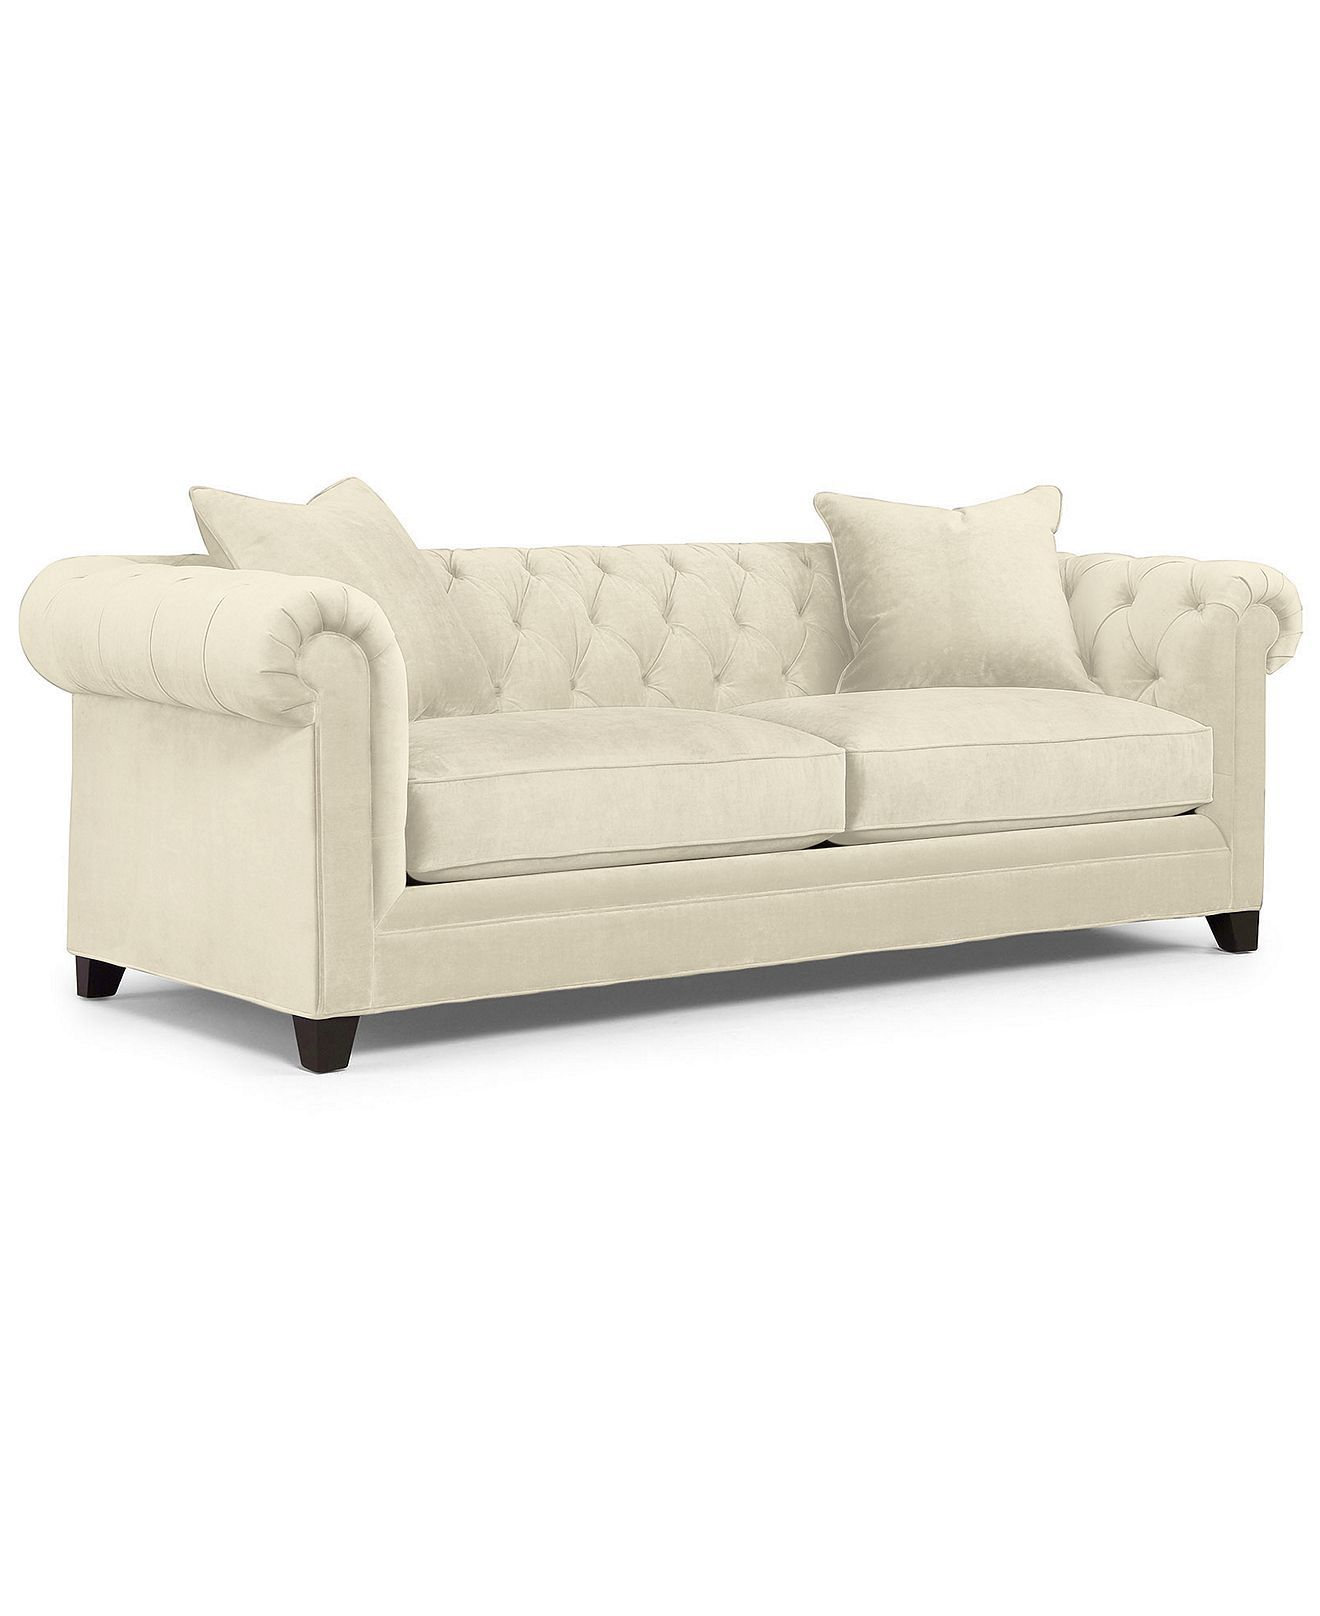 Martha Stewart Saybridge Sofa In Cocoa, Vintage, Honey Or Toast. This Is My  DREAM Couch. $999 At Macyu0027s.